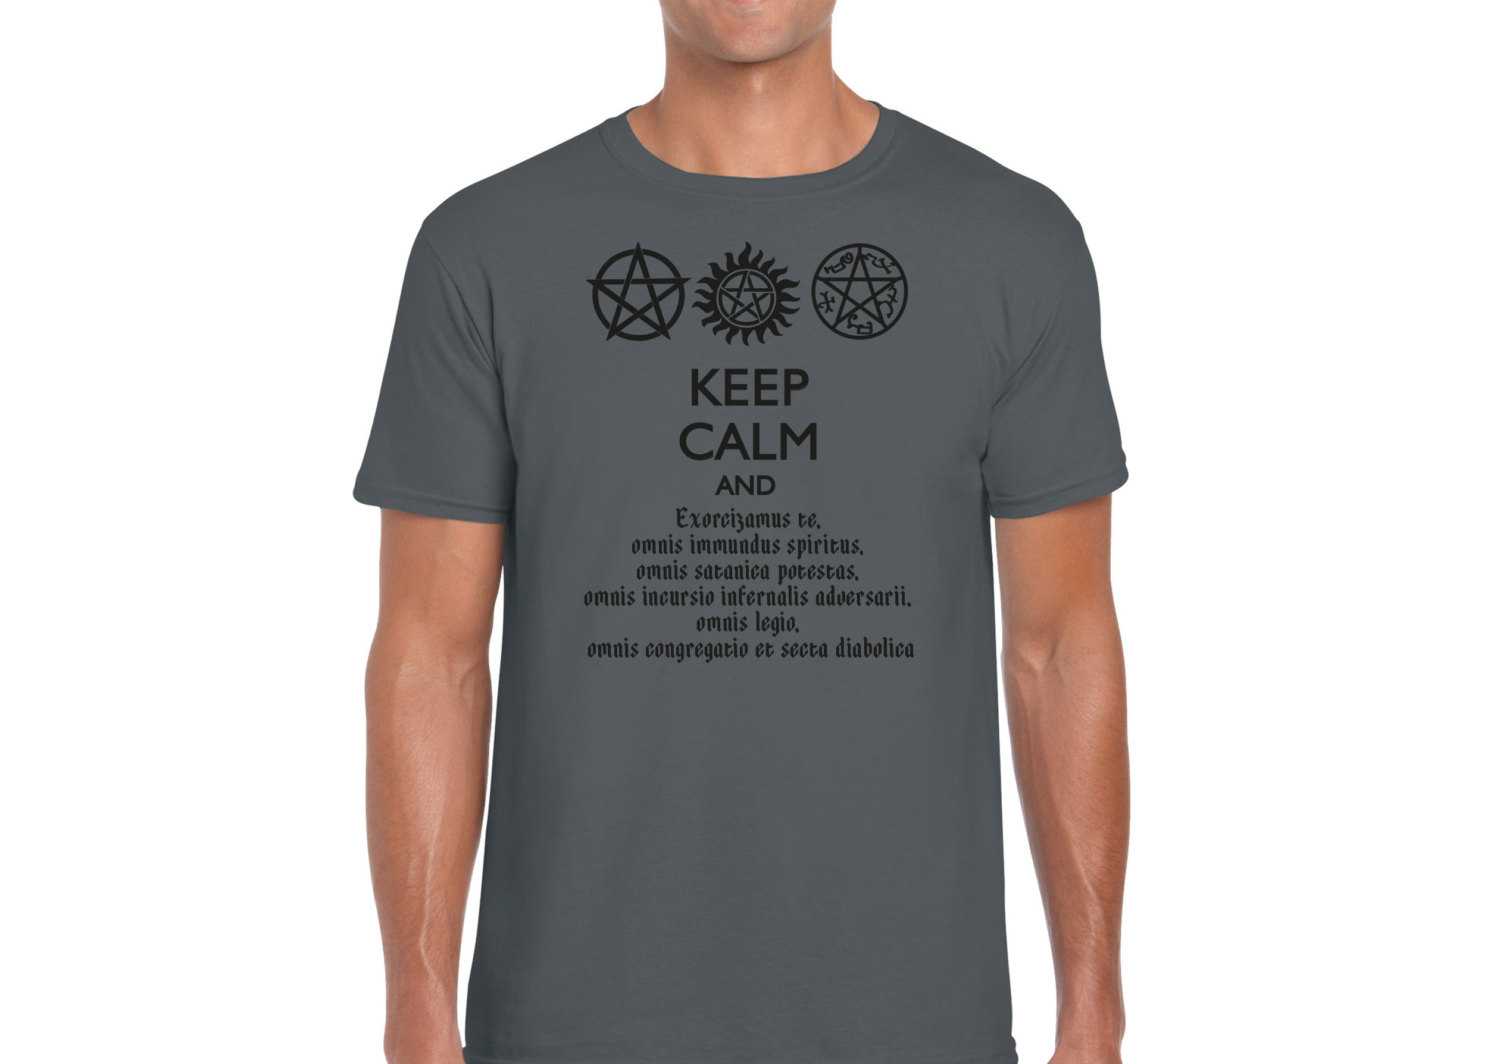 SUPERNATURAL KEEP CALM And Speak Latin Men's Fitted T-Shirt Dean Winchester  Sam Winchester from This Charming Fan